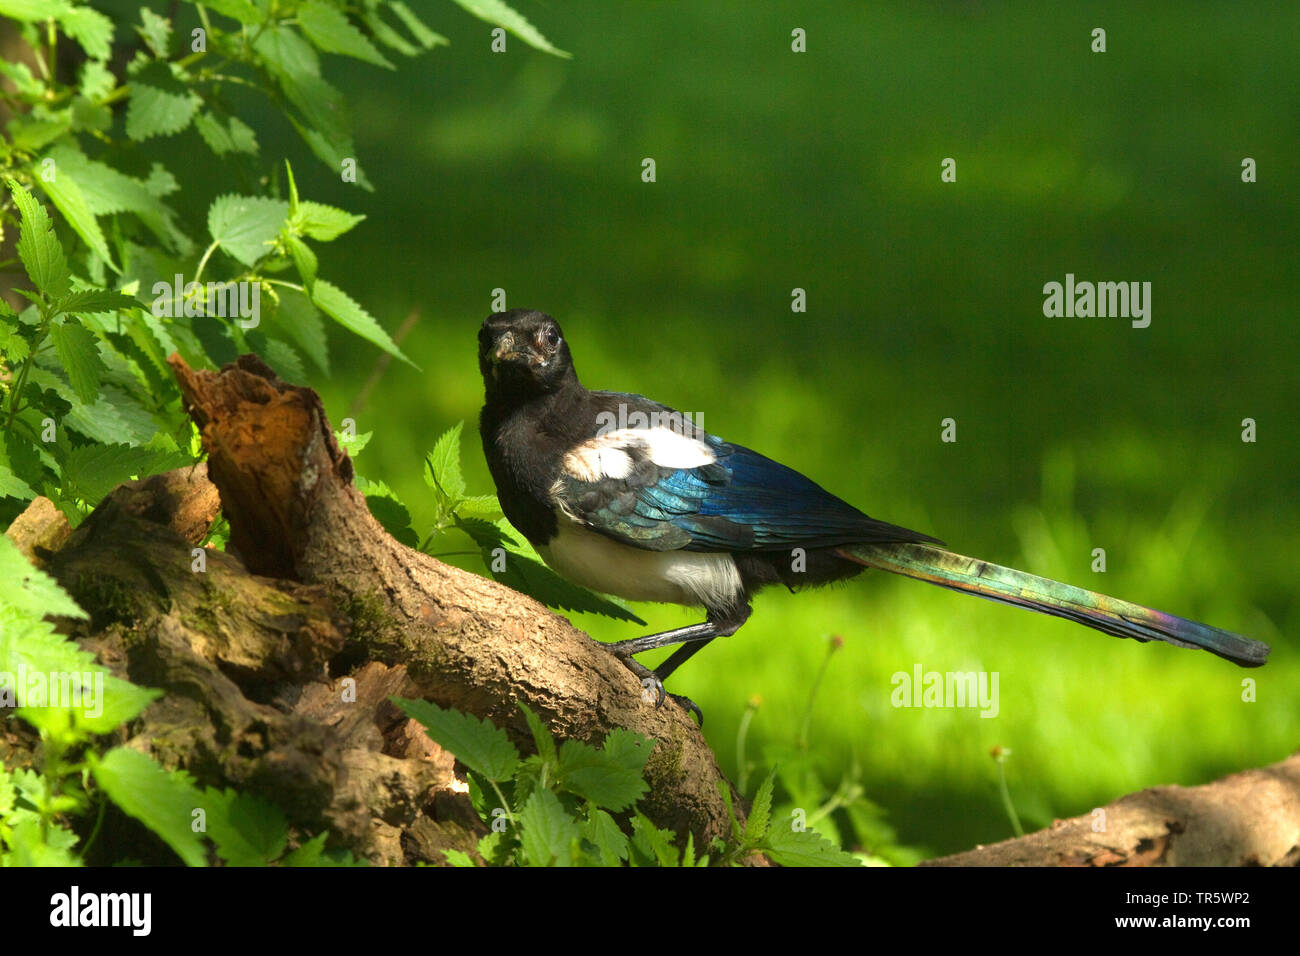 Elster (Pica pica), Jungvogel auf Ast, Deutschland, NRW | black-billed magpie (Pica pica), squeeker on a branch, Germany, North Rhine-Westphalia | BLW - Stock Image